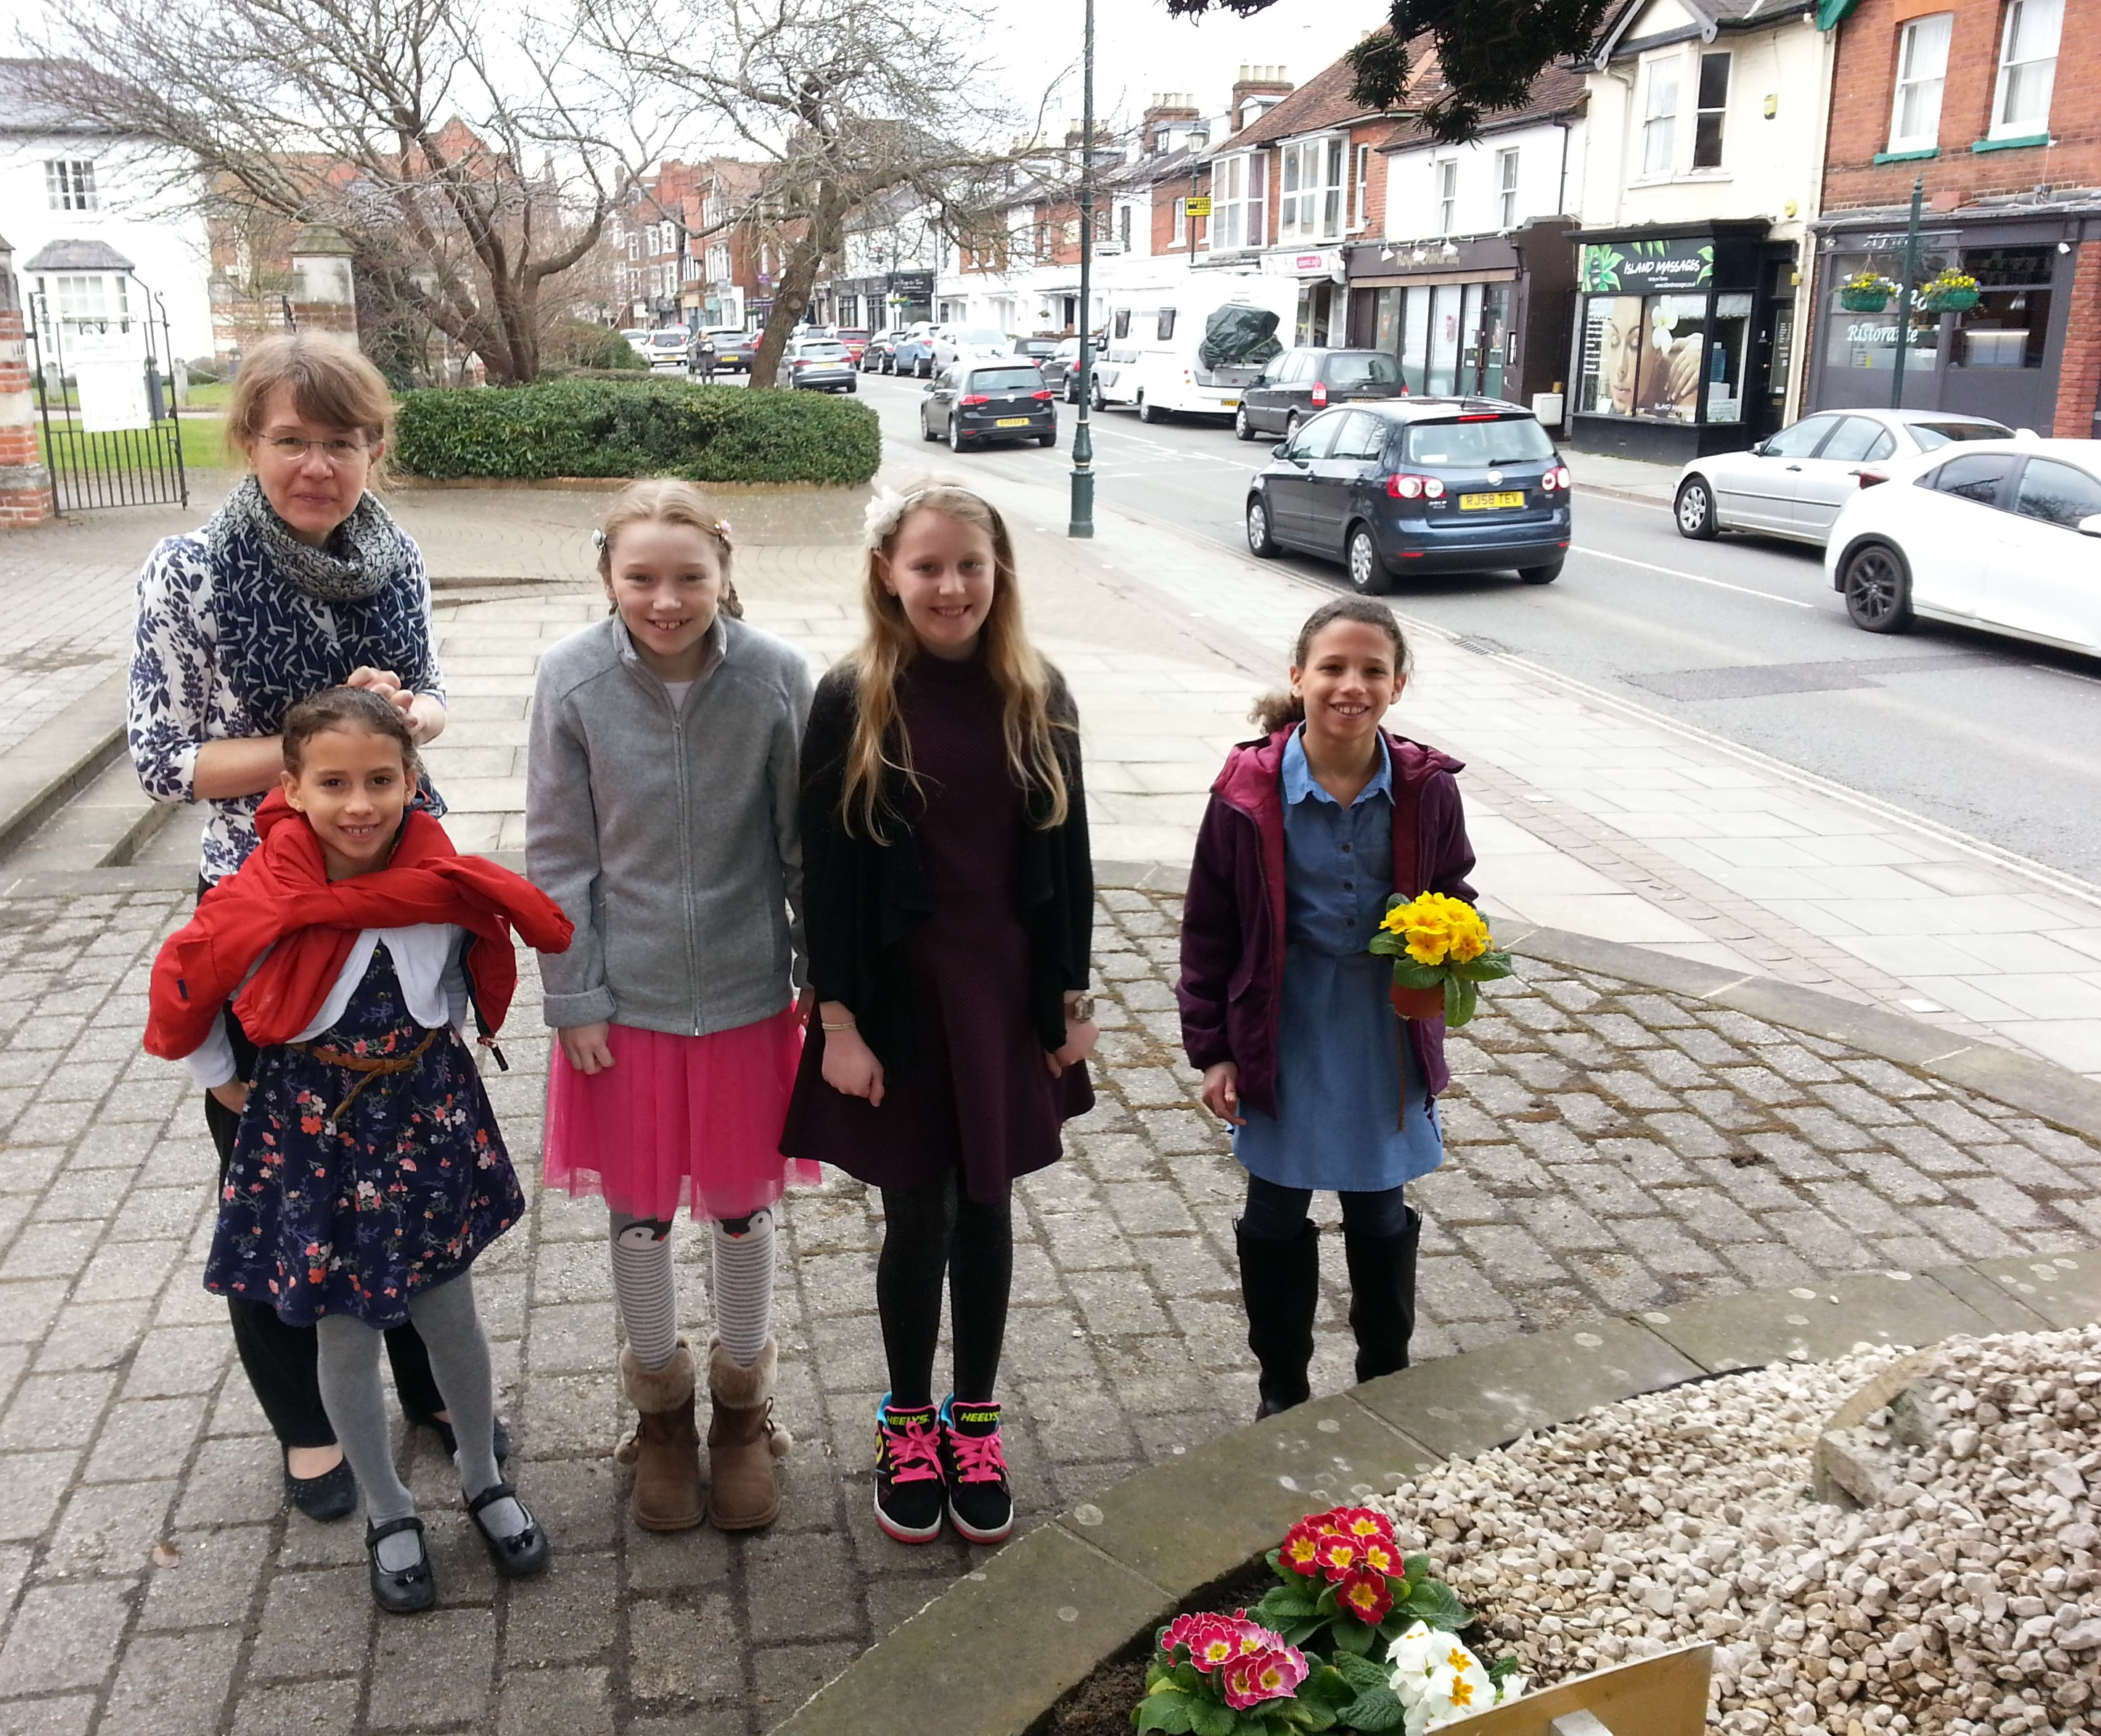 The girls are ready to make the Easter Resurrection Garden